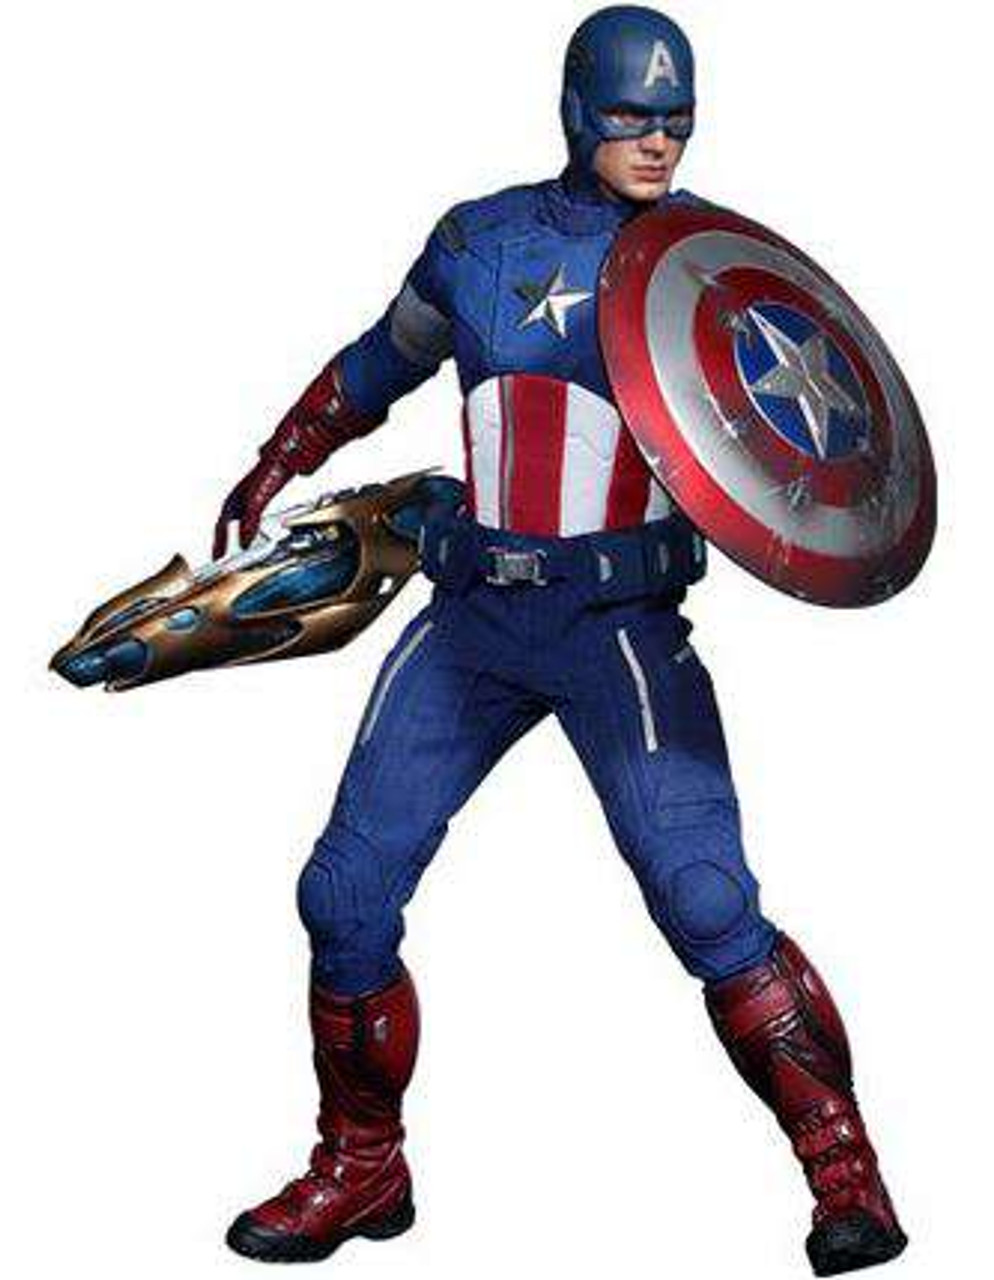 Marvel Avengers Movie Masterpiece Captain America 1/6 Collectible Figure [Avengers]